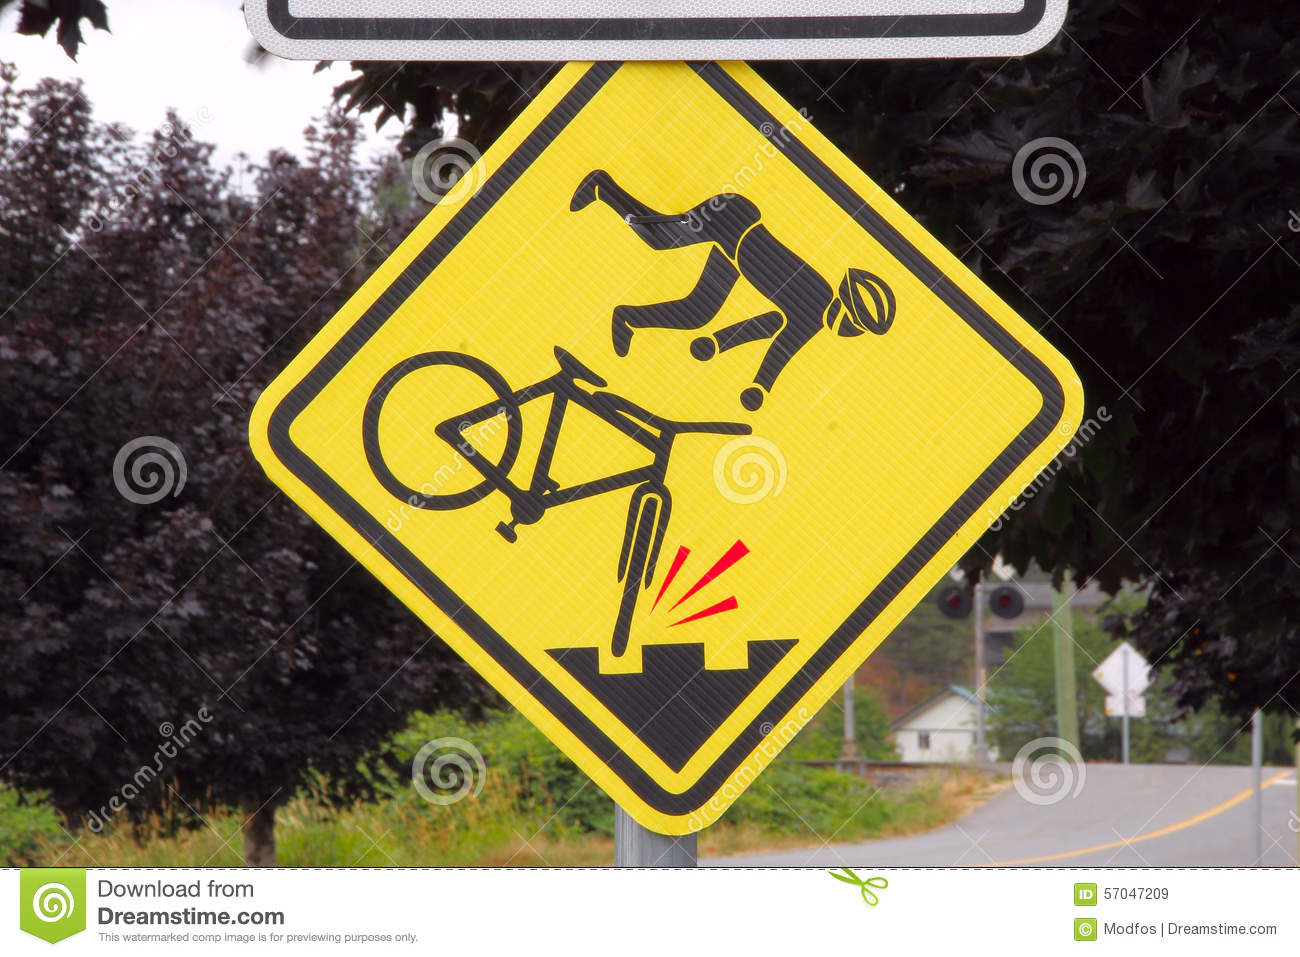 Road Hazard Sign For Bicycles Stock Image - Image of ...